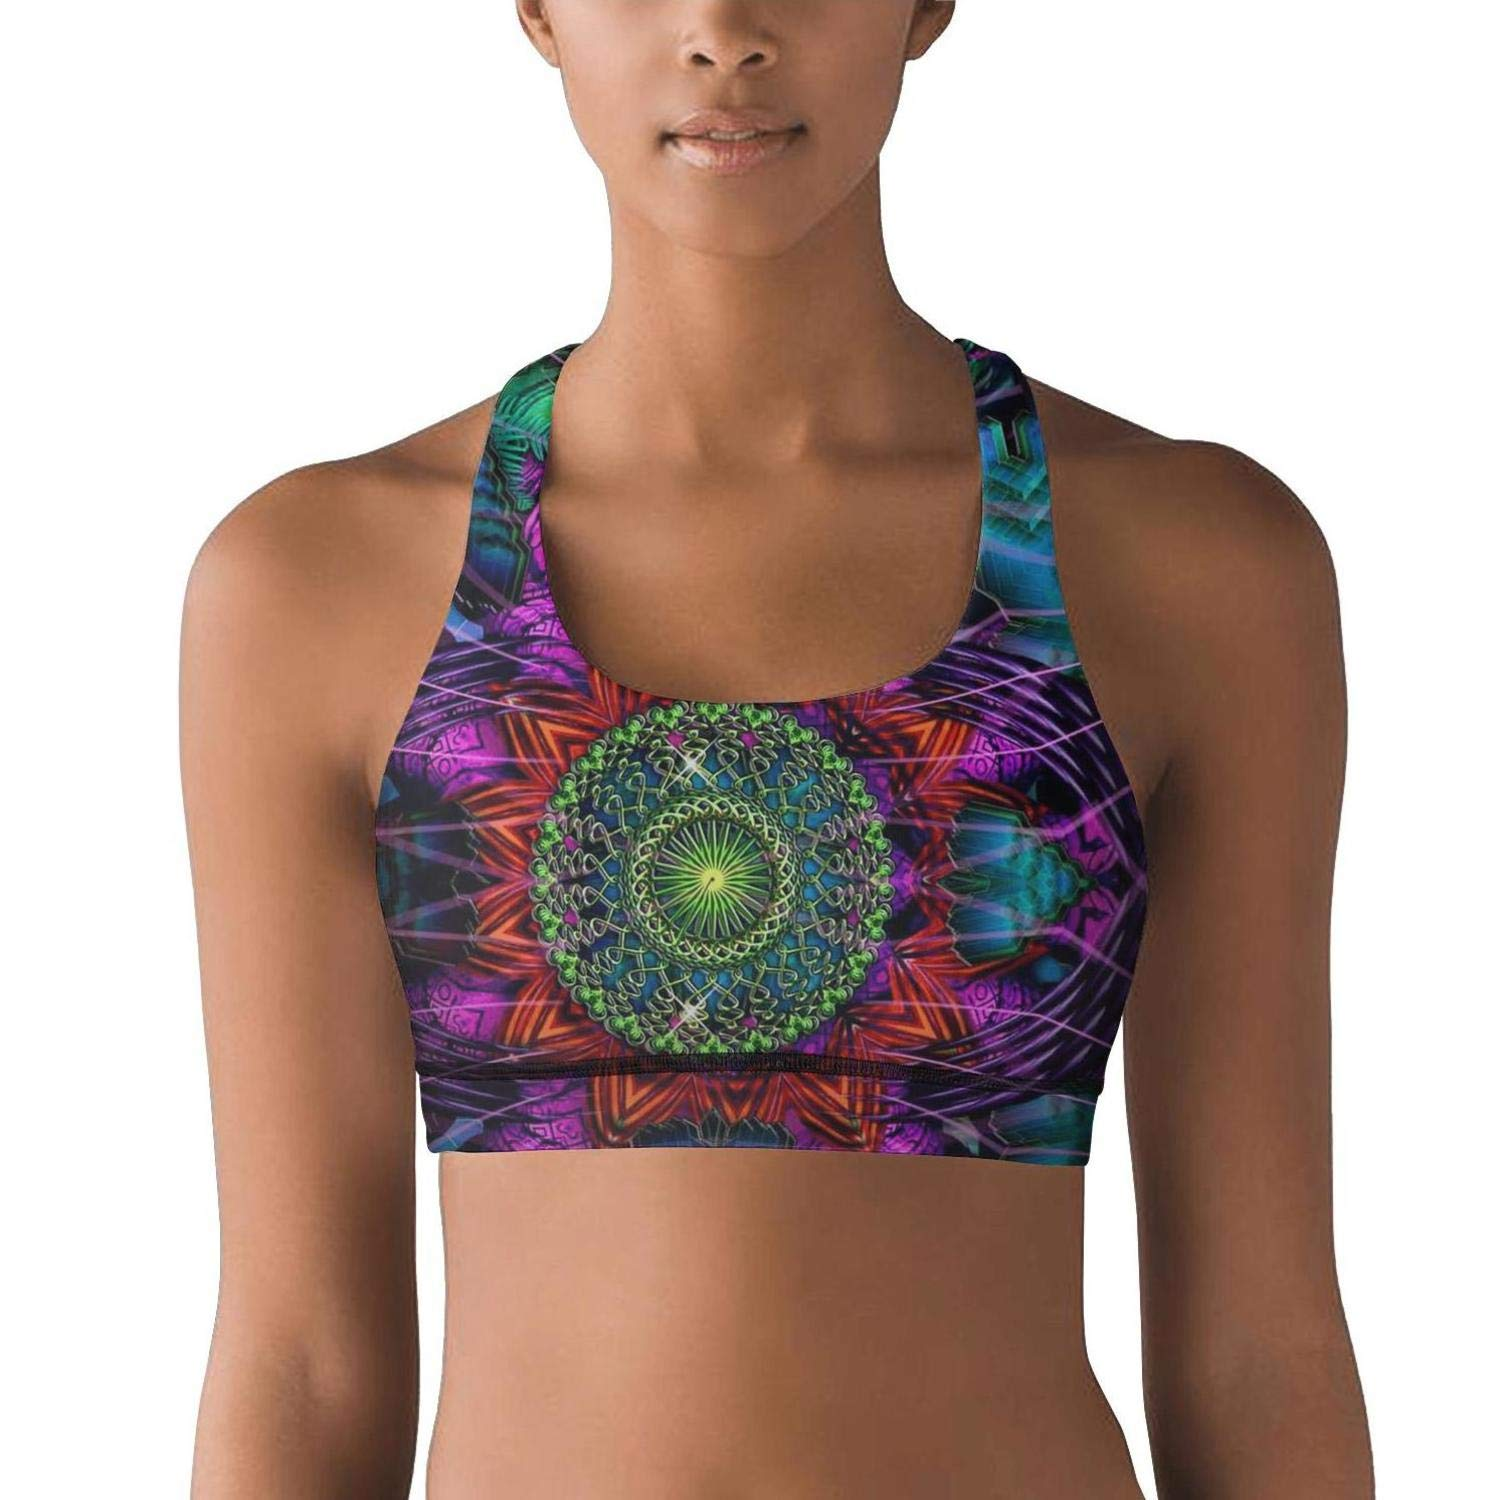 Migny Hills Womens Light Support Athleisure Sports Bras Trippy Eyes Psychedelic Yoga Bra with Removable Pads